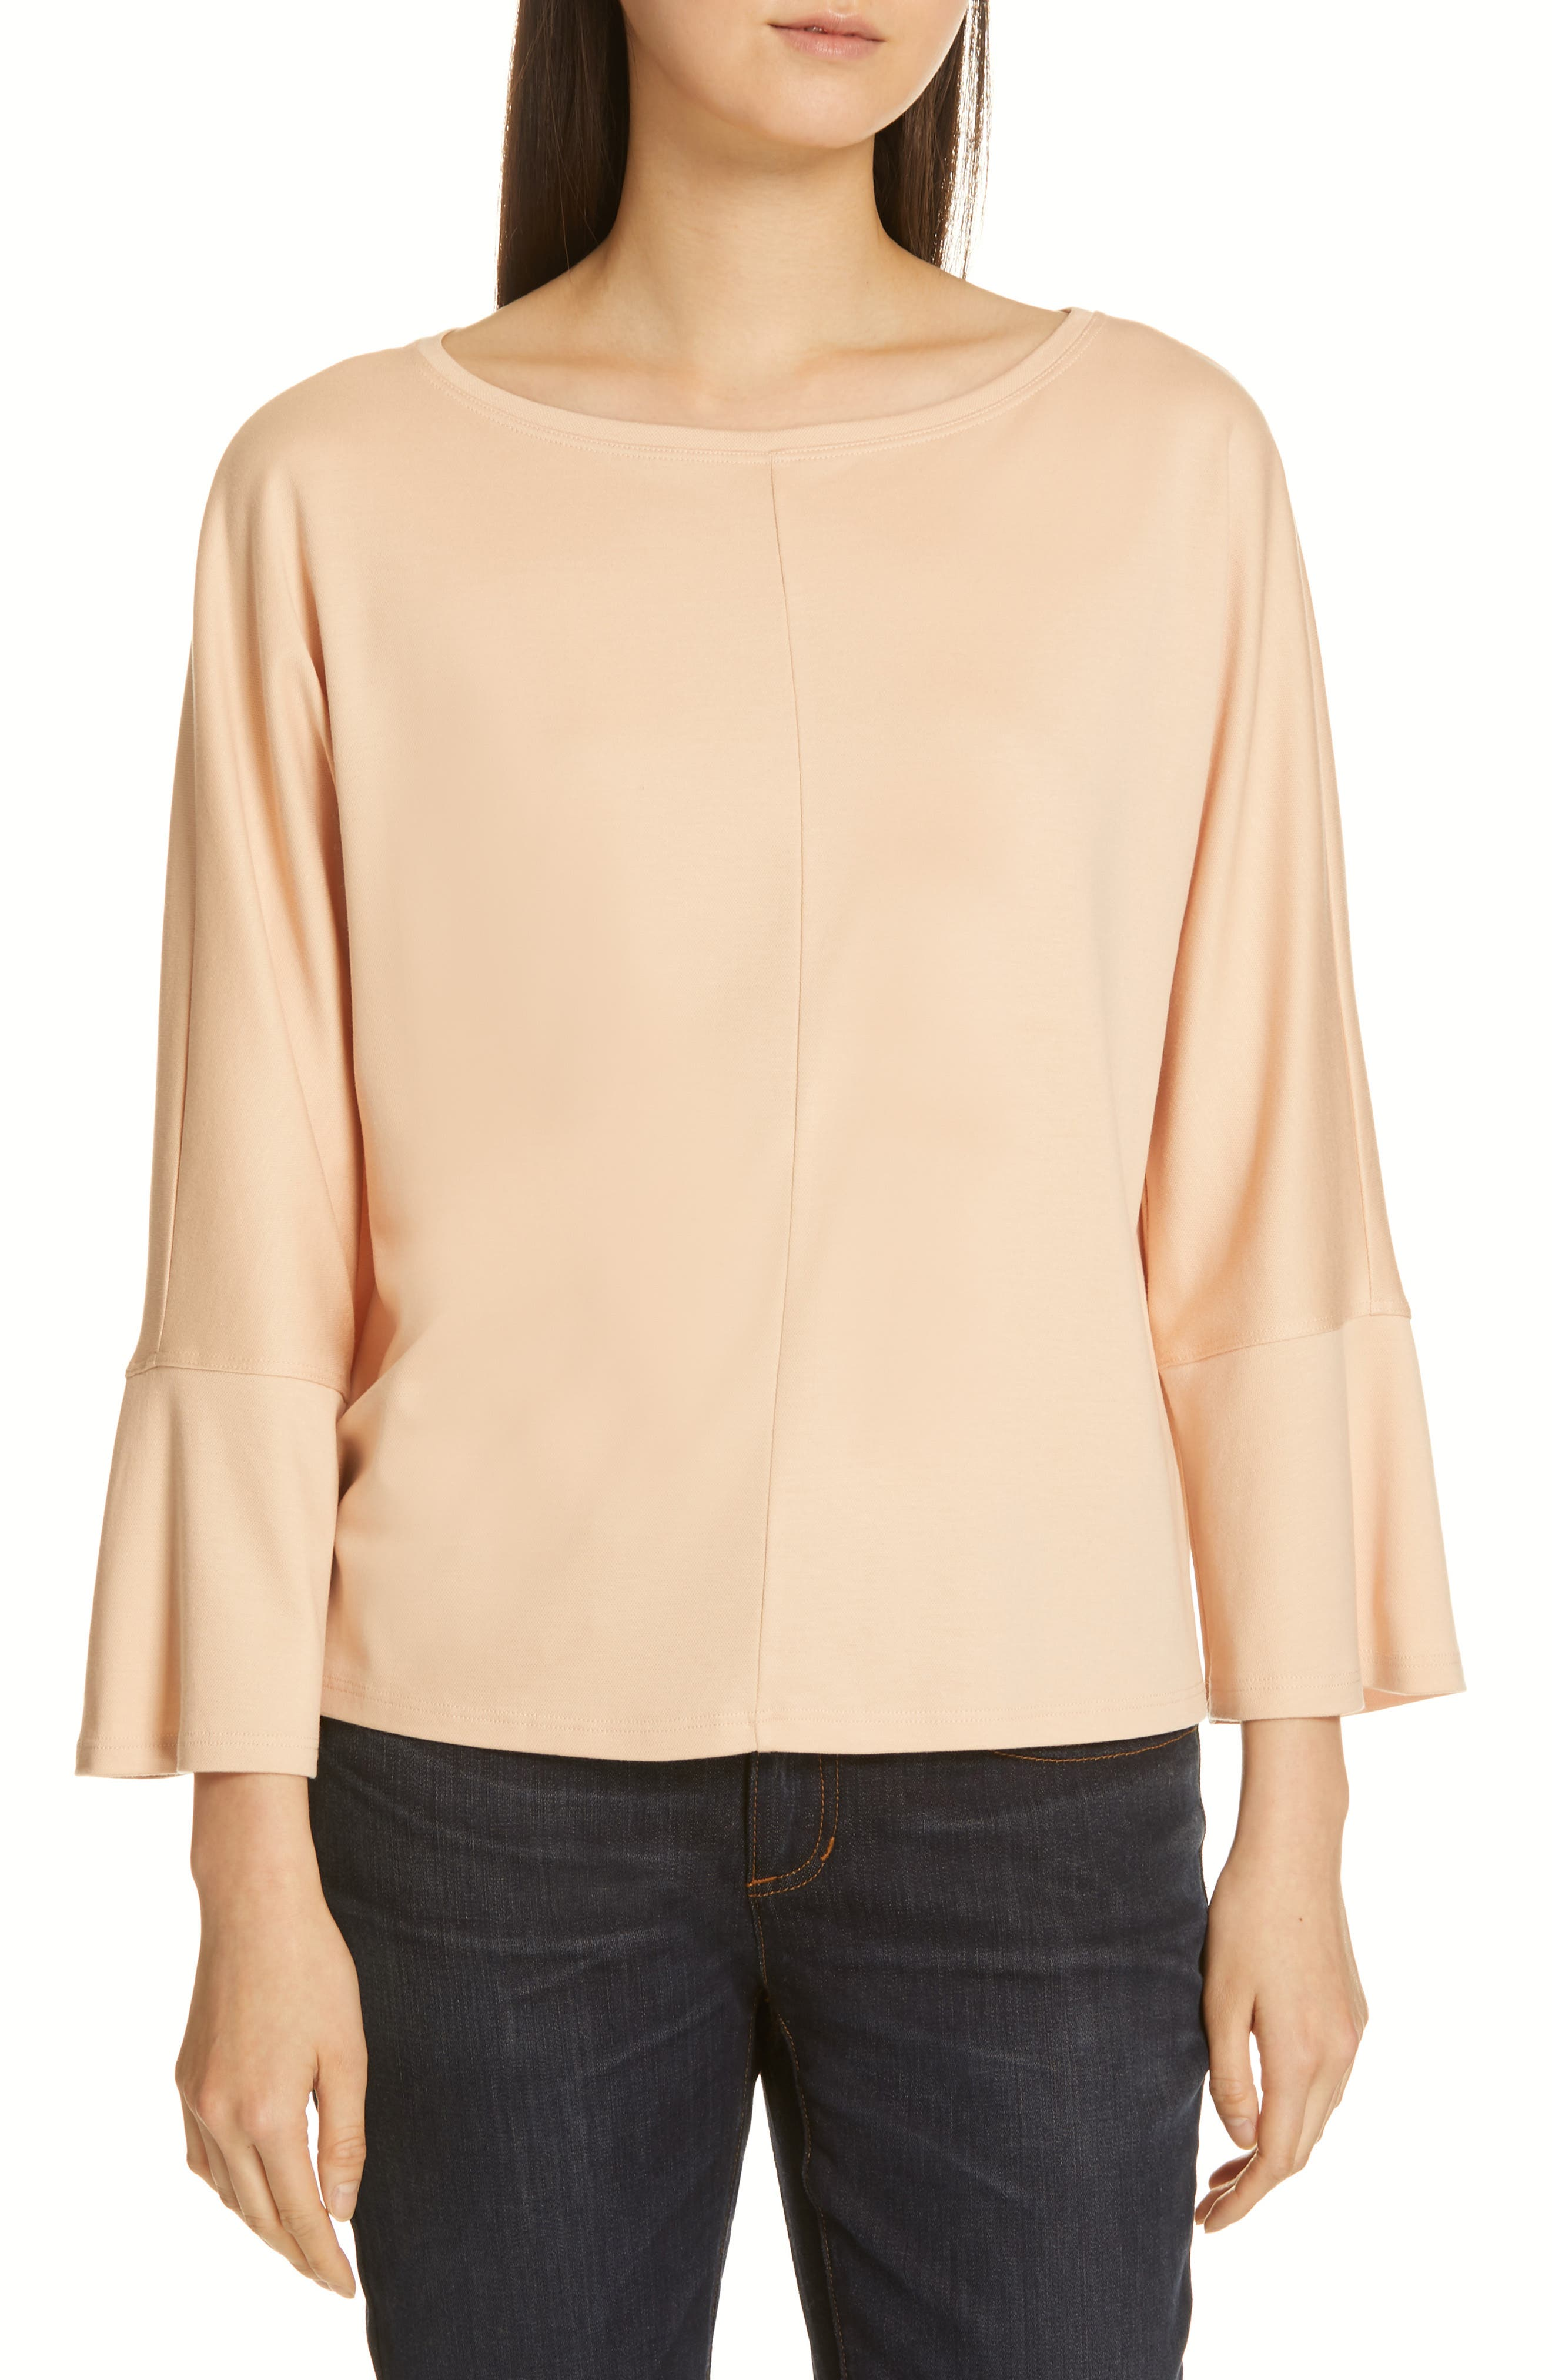 EILEEN FISHER, Bell Sleeve Top, Main thumbnail 1, color, ROSE WATER